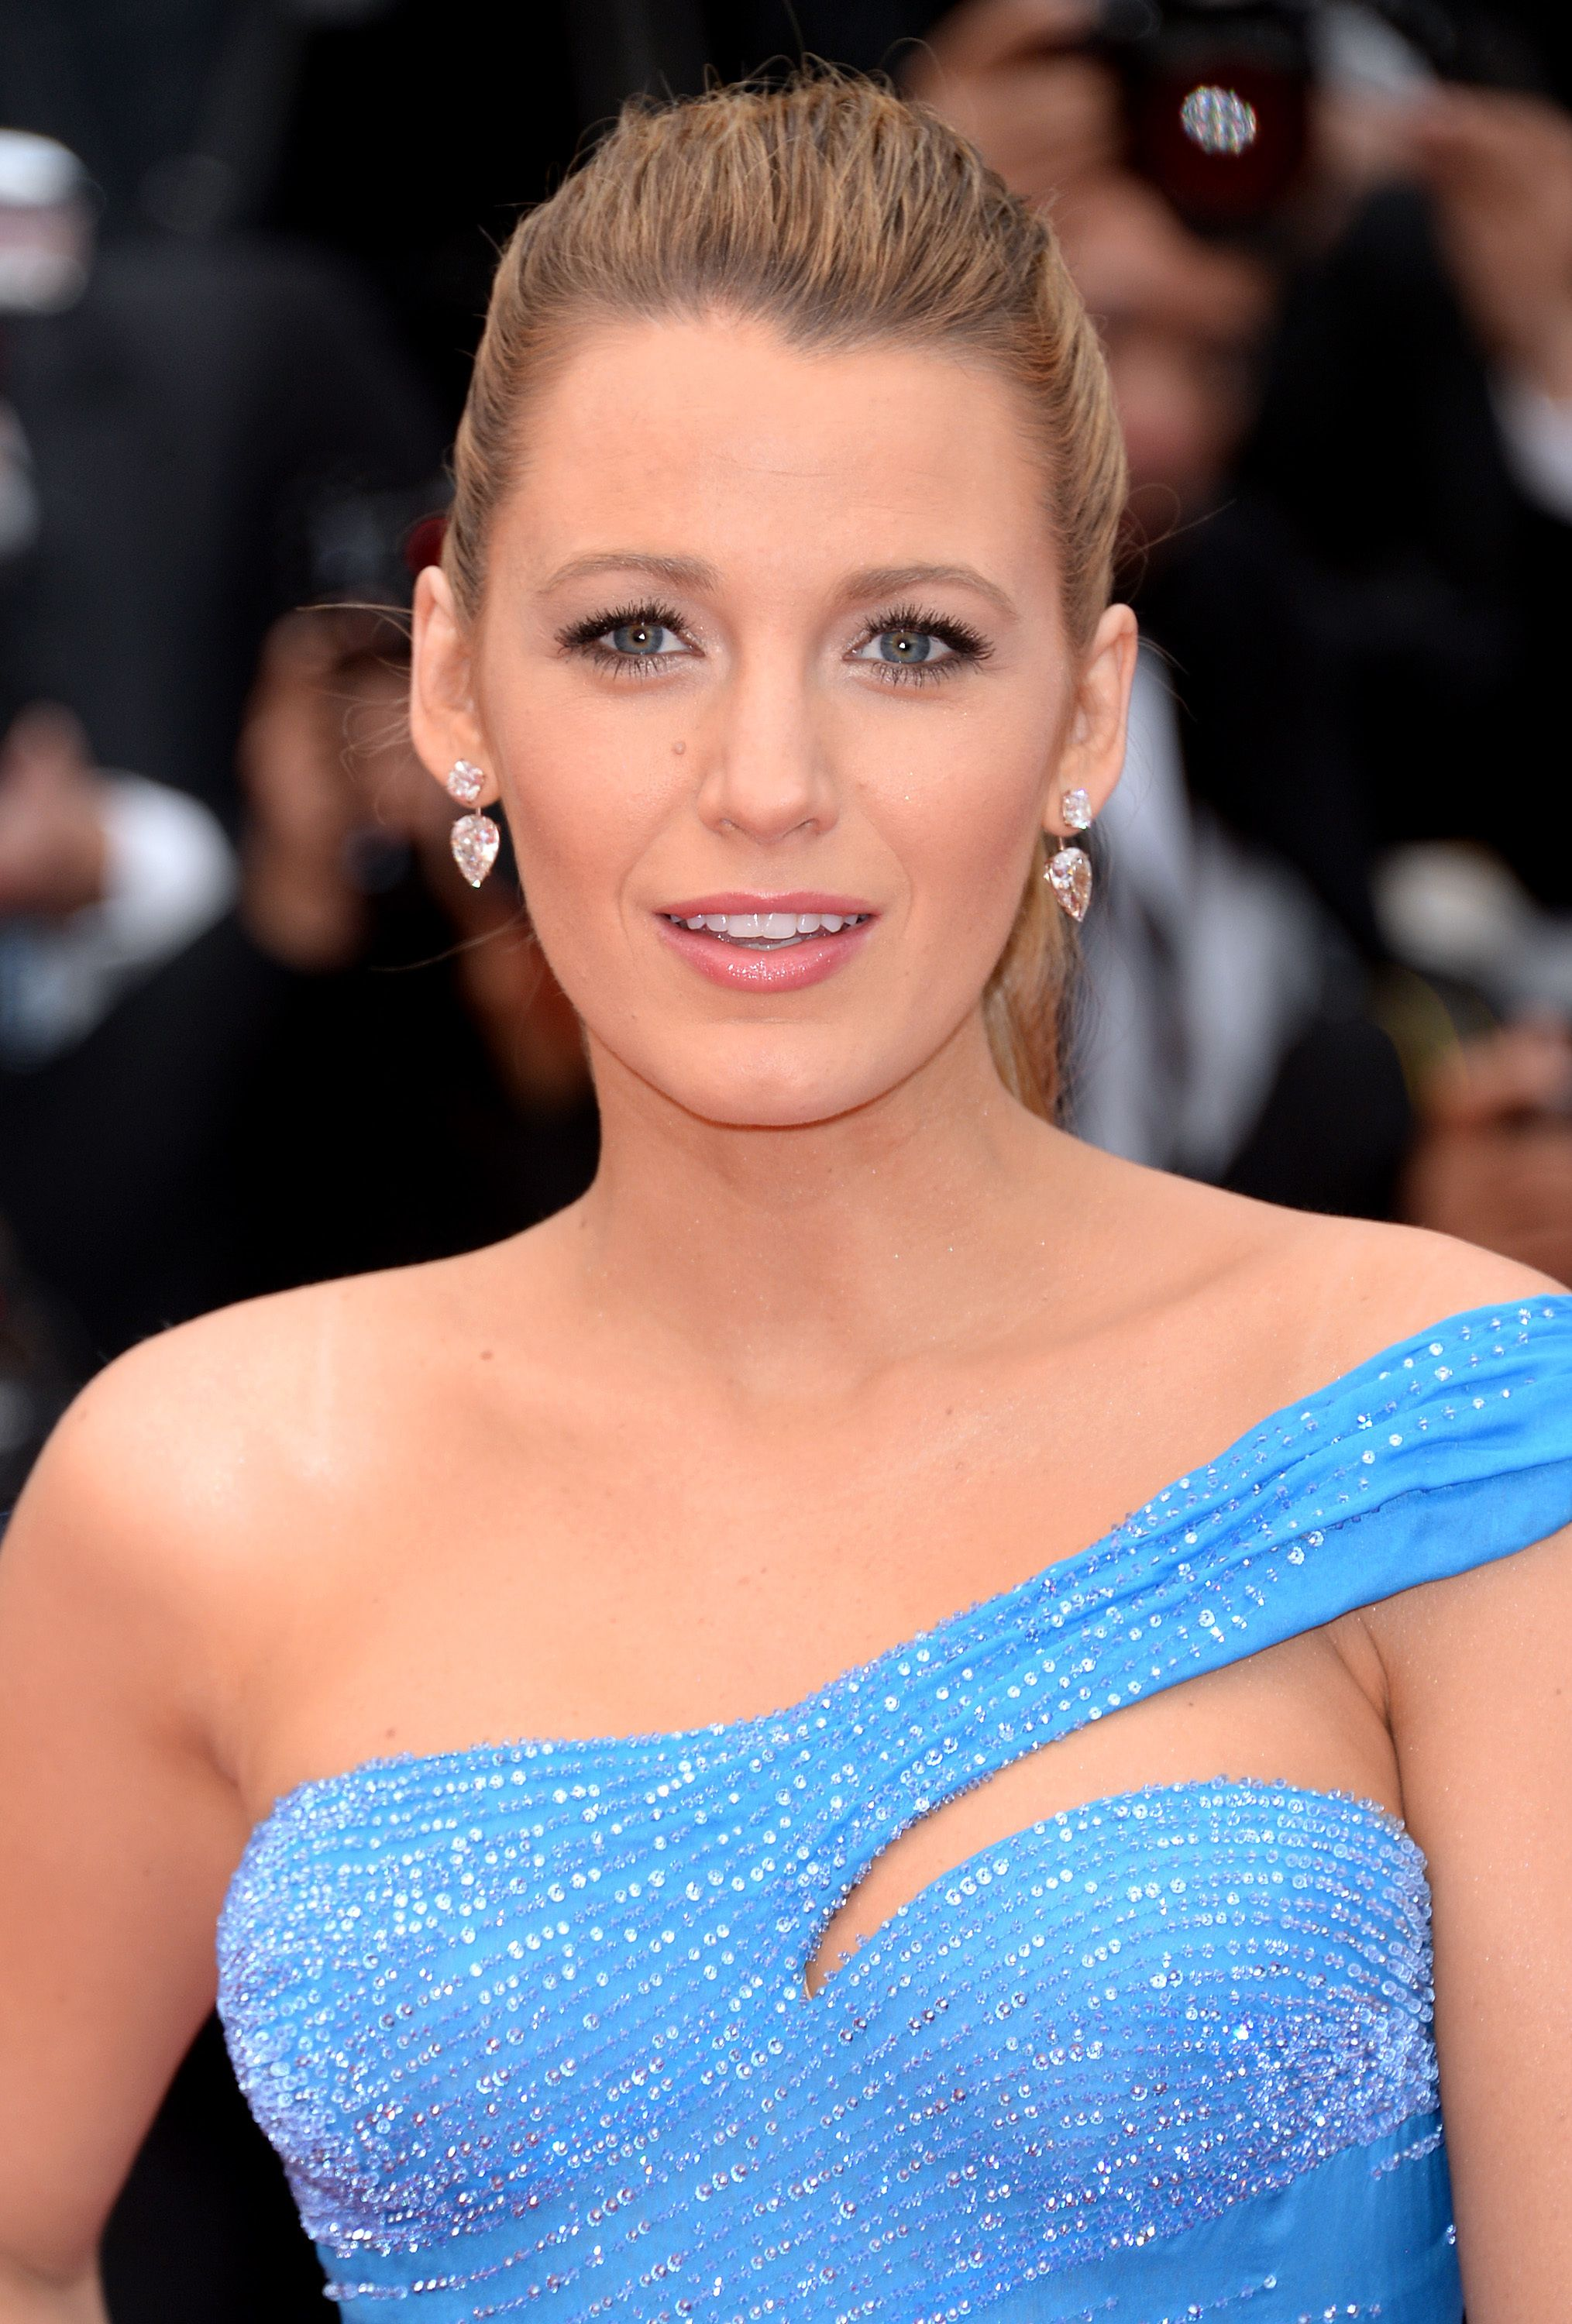 AwardWinning Beauty Looks from the Cannes Film Festival